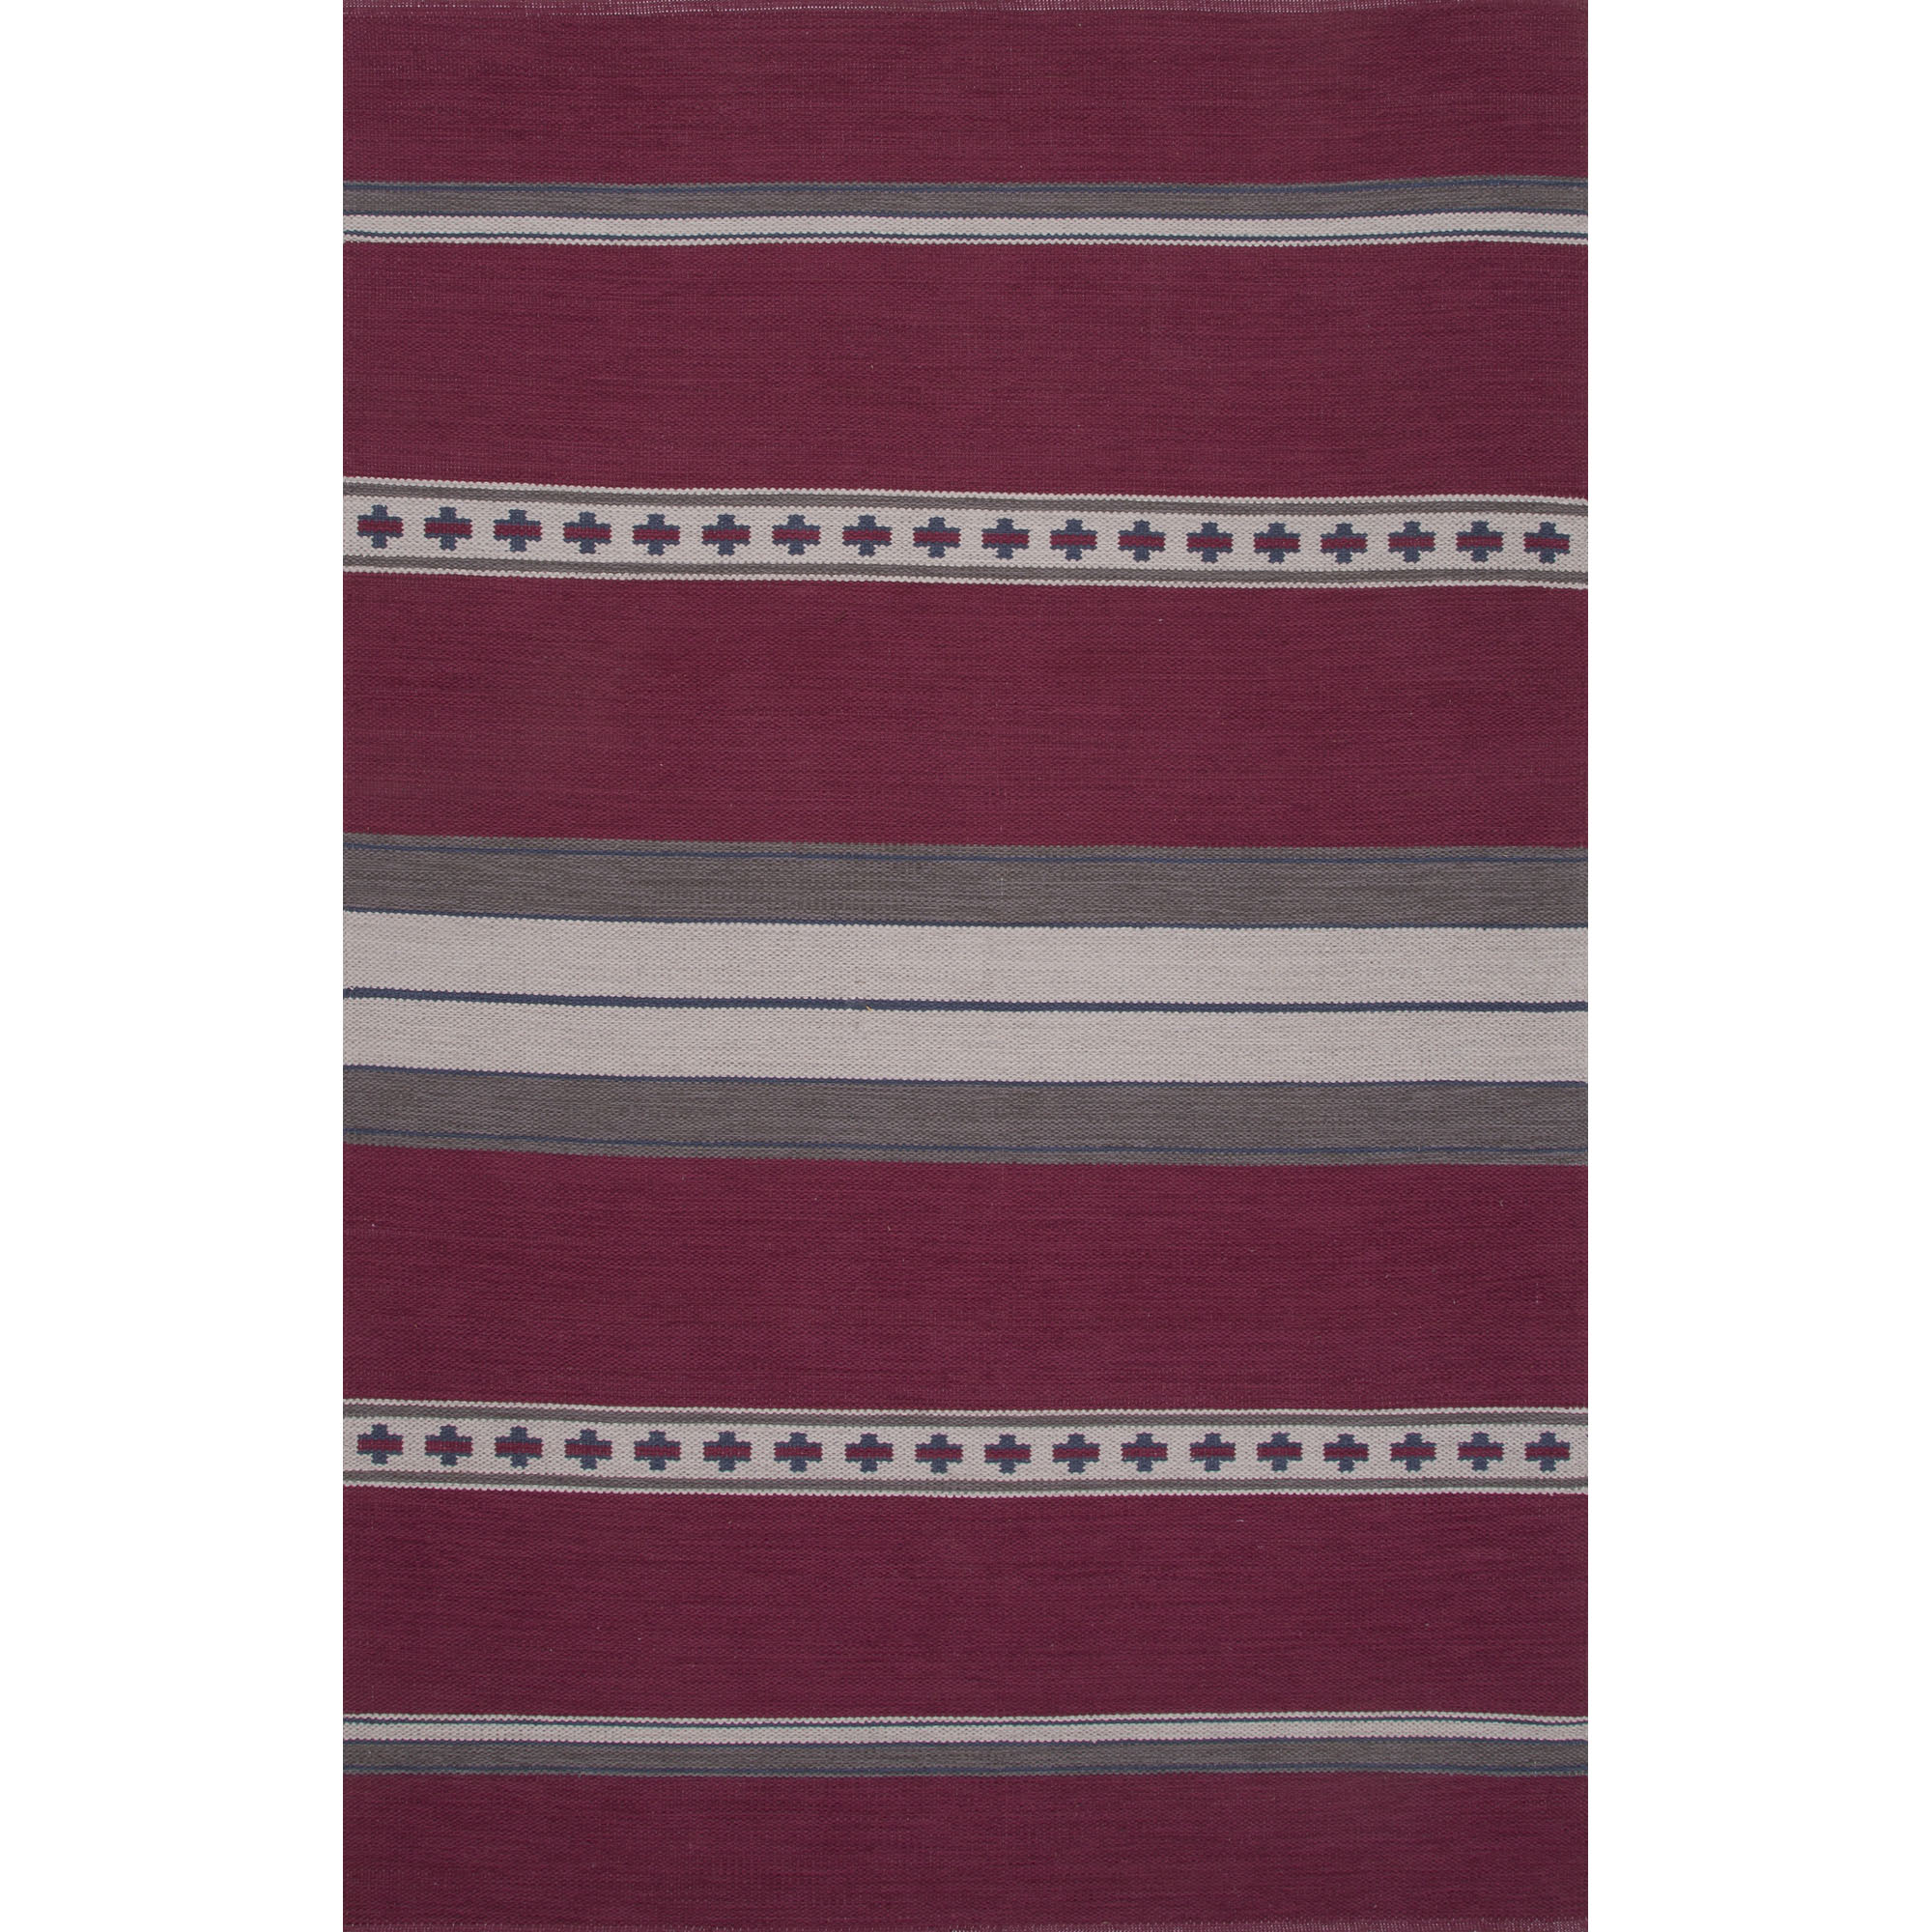 JAIPUR Rugs Traditions Modern Cotton Flat Weave 5 x 8 Rug - Item Number: RUG120653